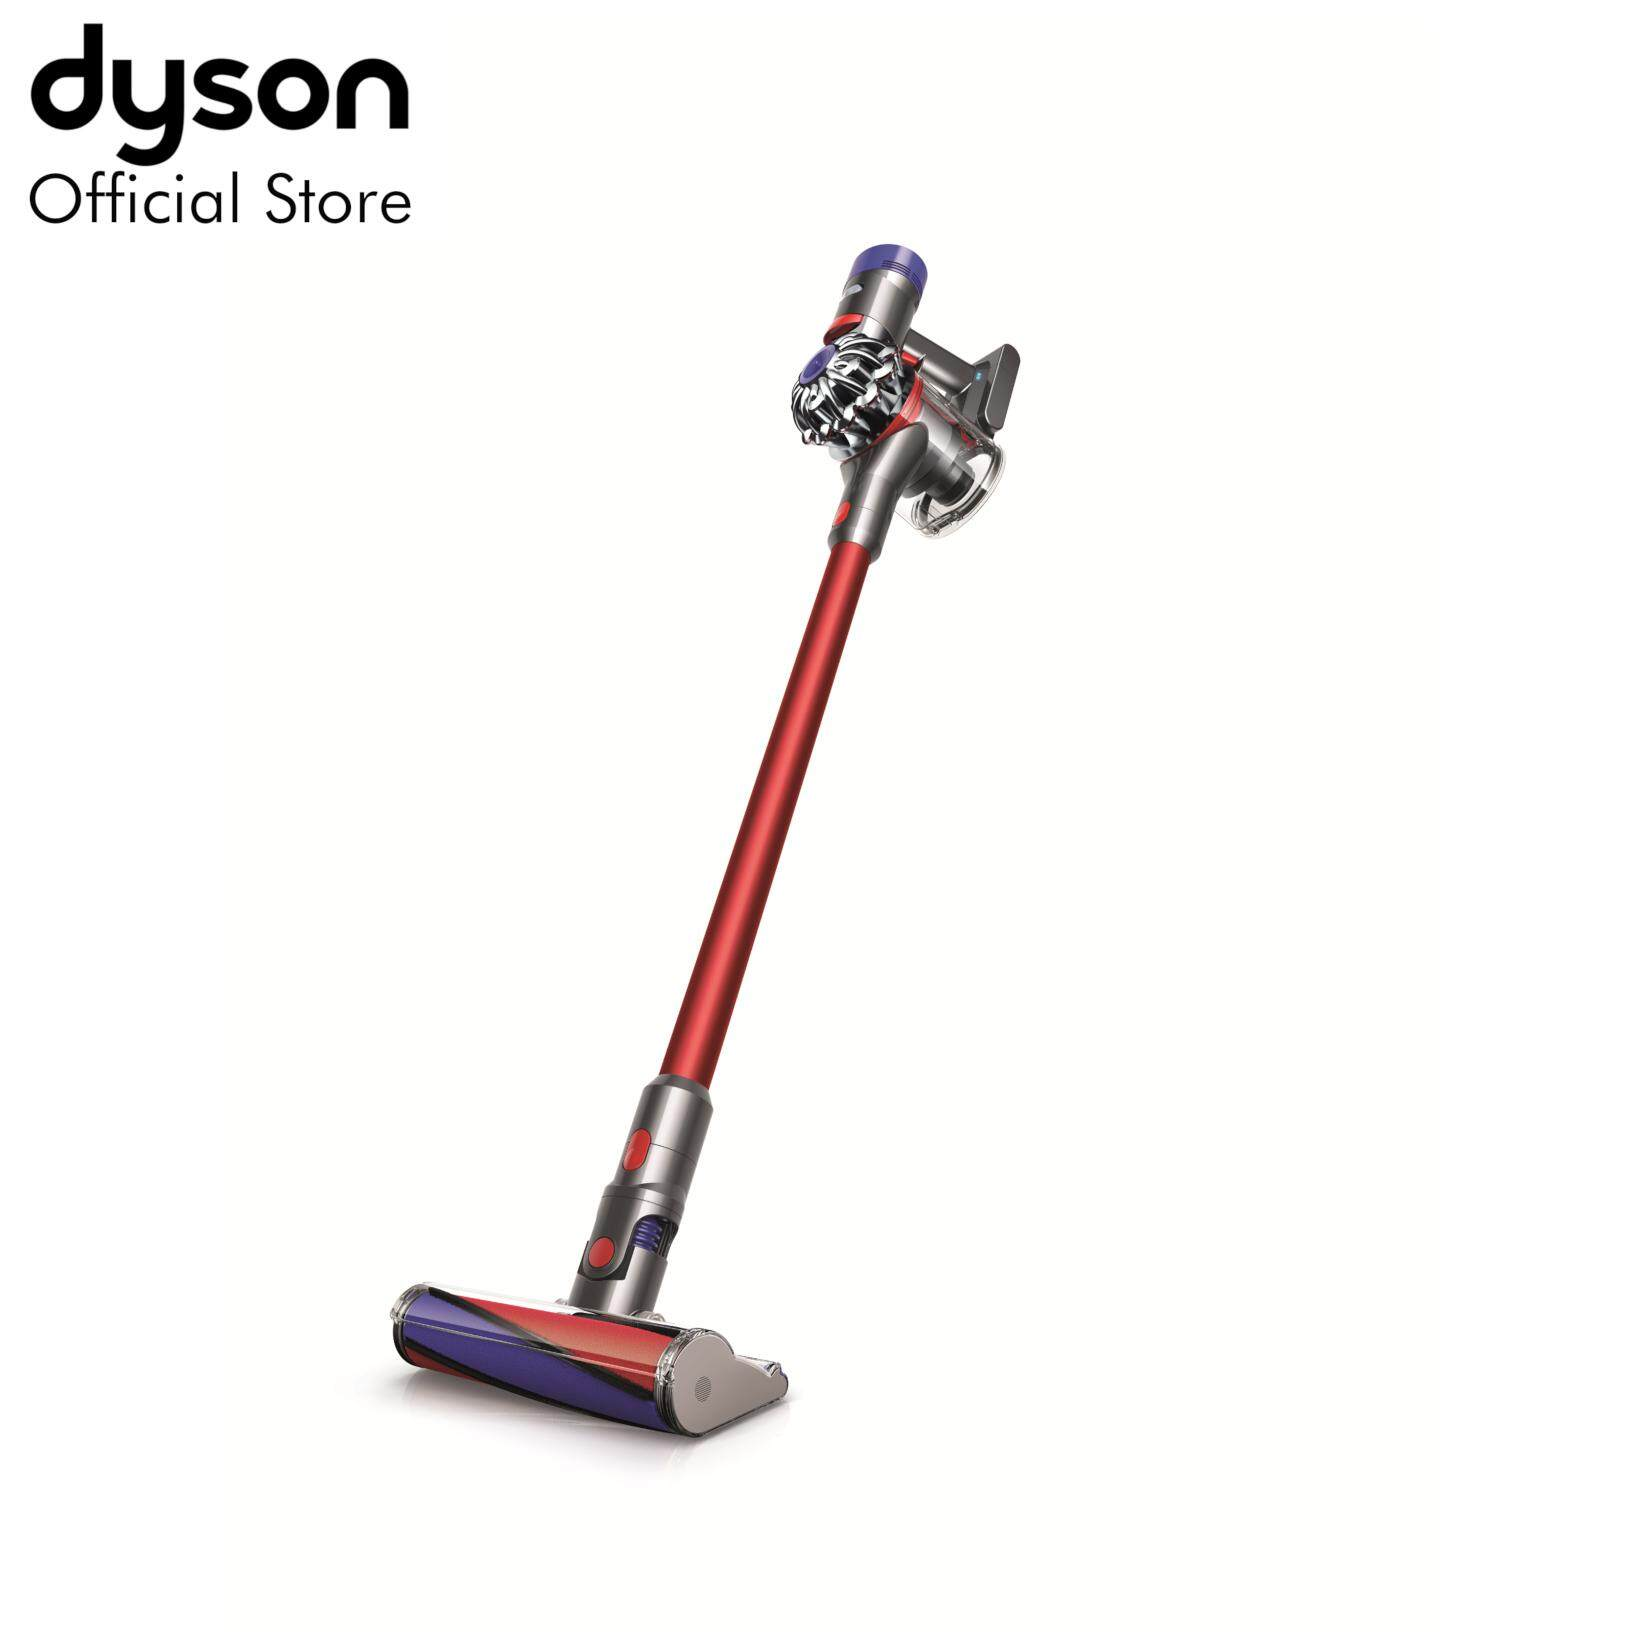 Image of: Fluffy Head Dyson V7 Fluffy Lazada Dyson Vacuum Cleaners Price In Malaysia Best Dyson Vacuum Cleaners